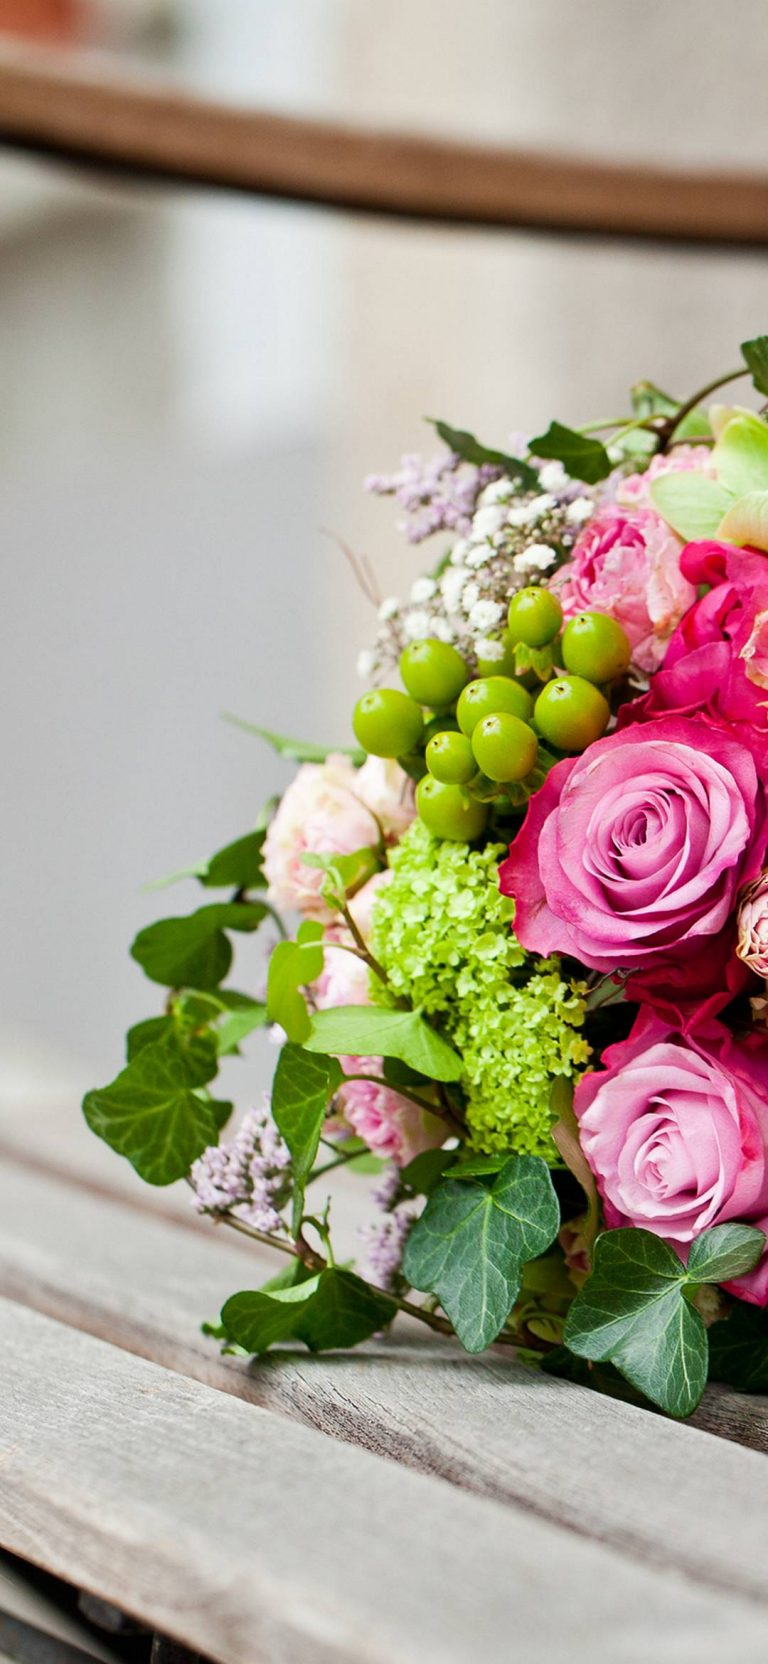 Pink-Flowers-Bouquet-Leaves-Roses-1080x2340-768x1664 - 51+ BEST Free vivo Z1 Pro Phone Wallpapers [year]